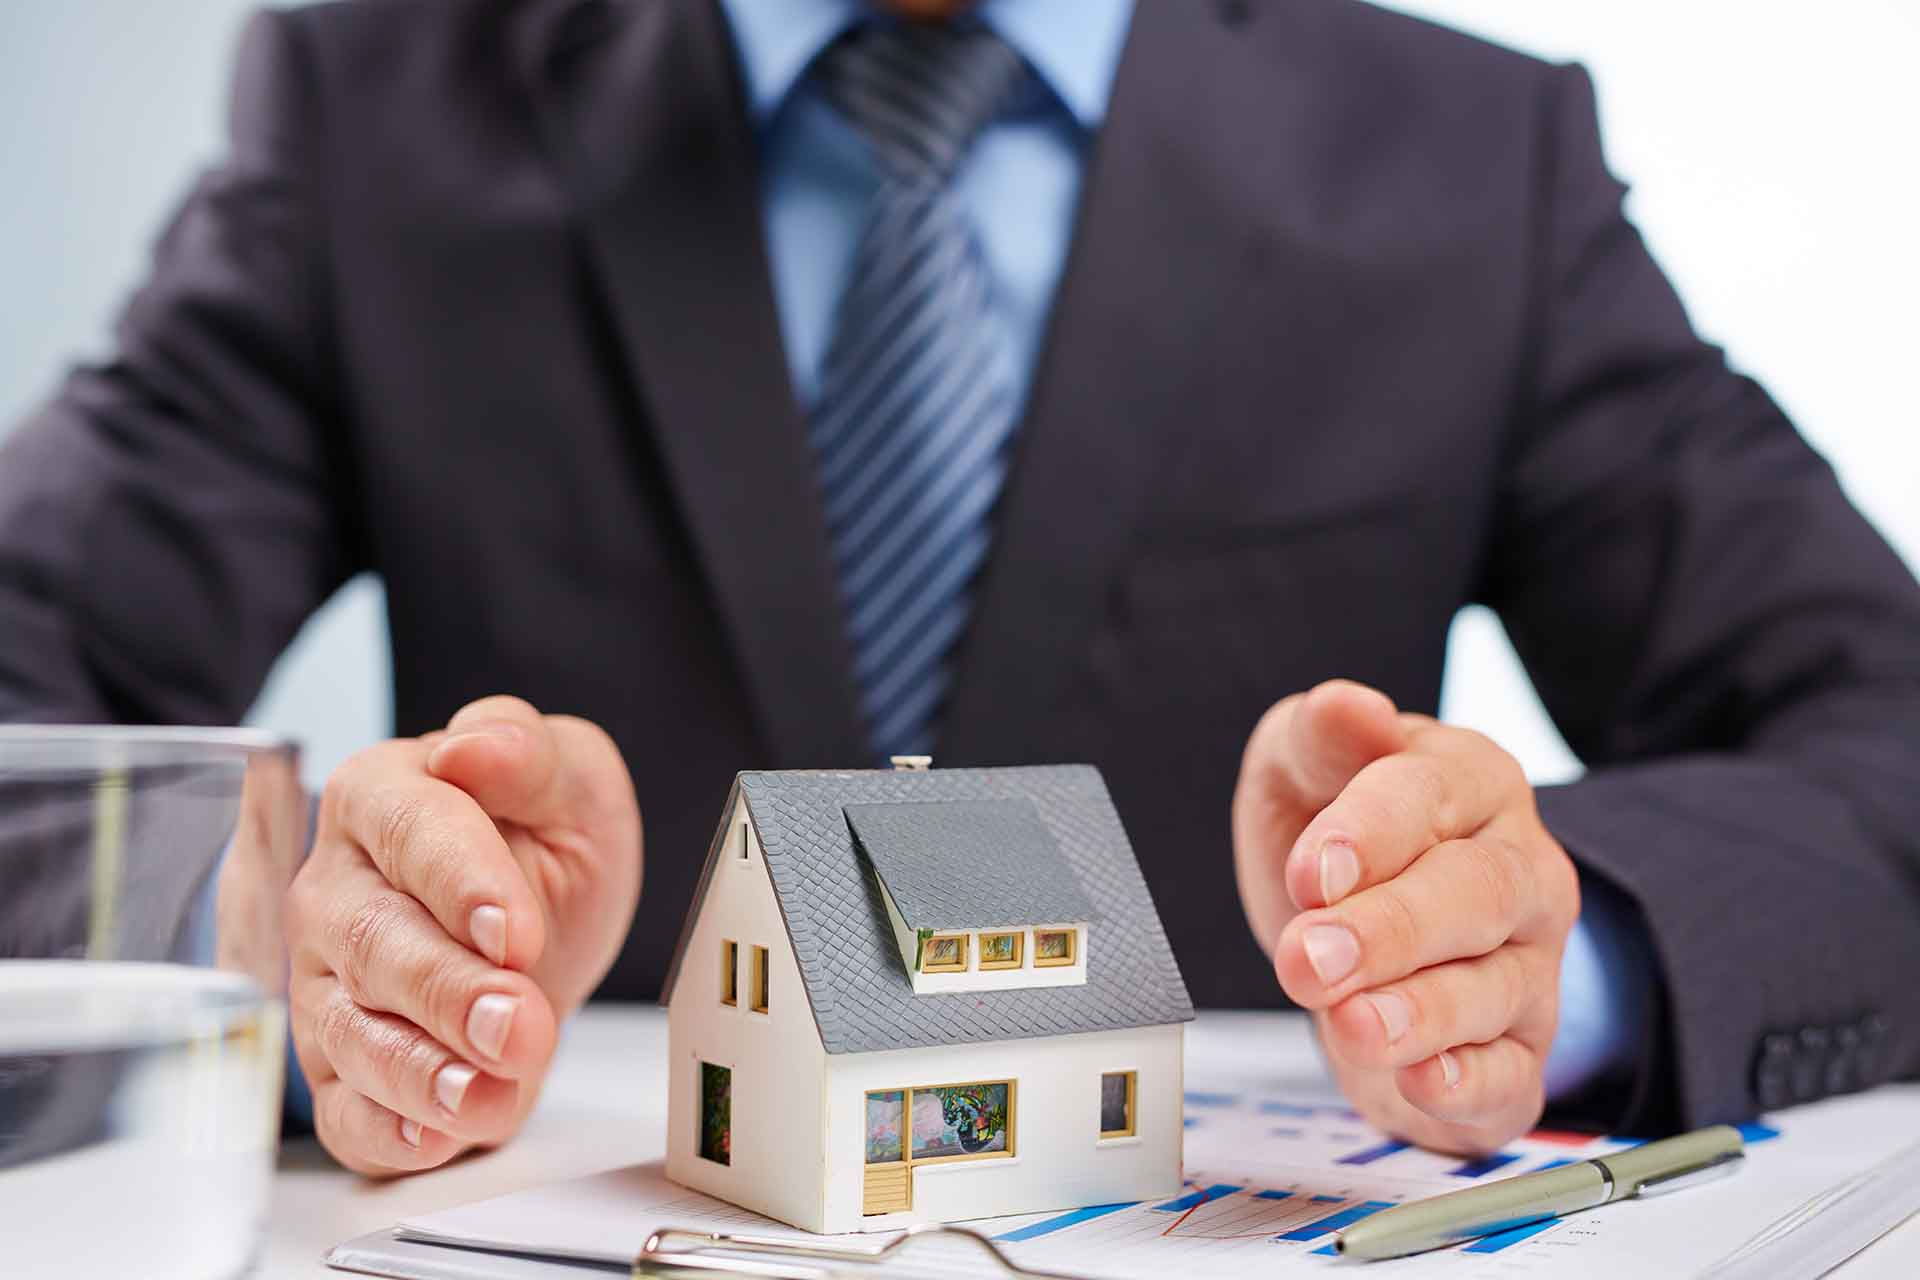 5 things to avoid before applying for a mortgage